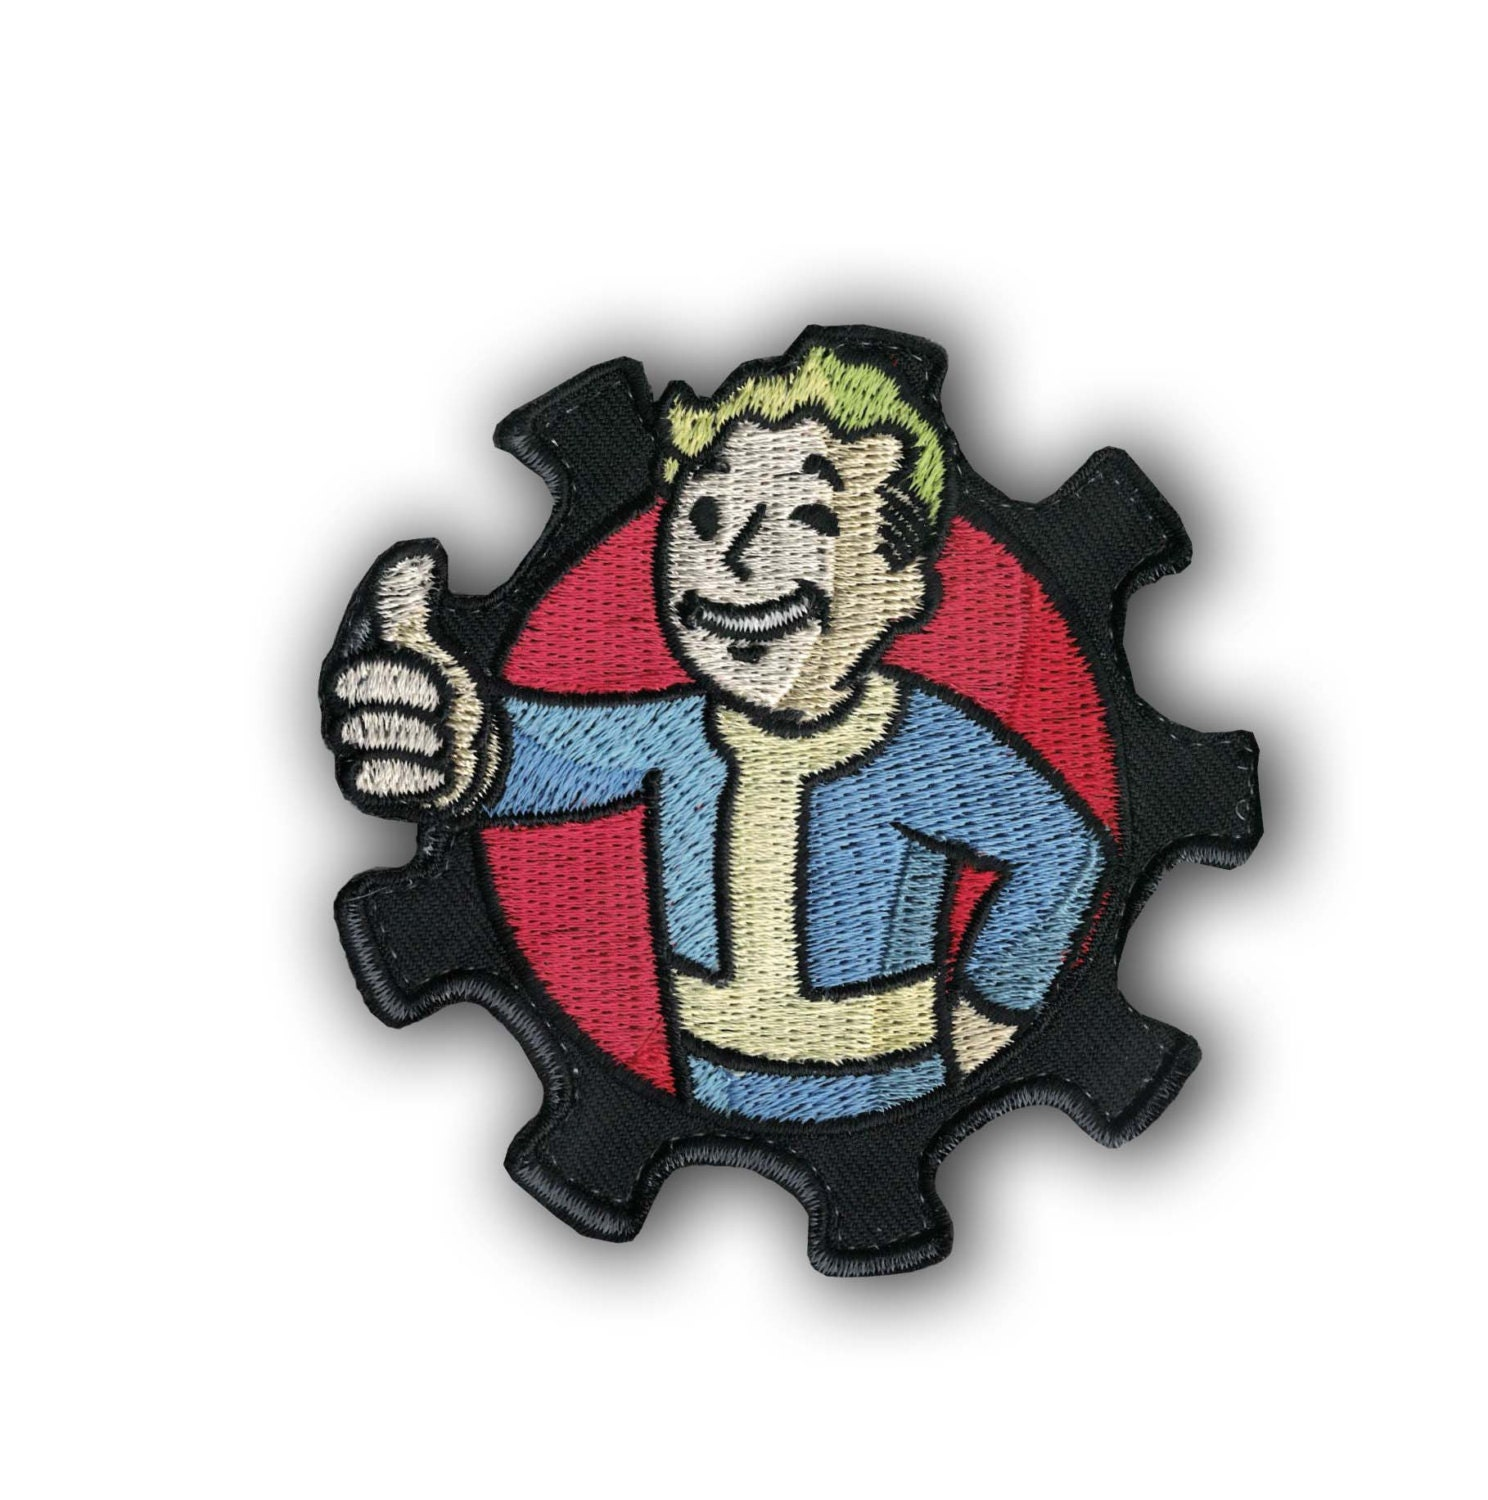 Thumbs Up Pip boy 3000 Brotherhood Morale Military by PatchRUs